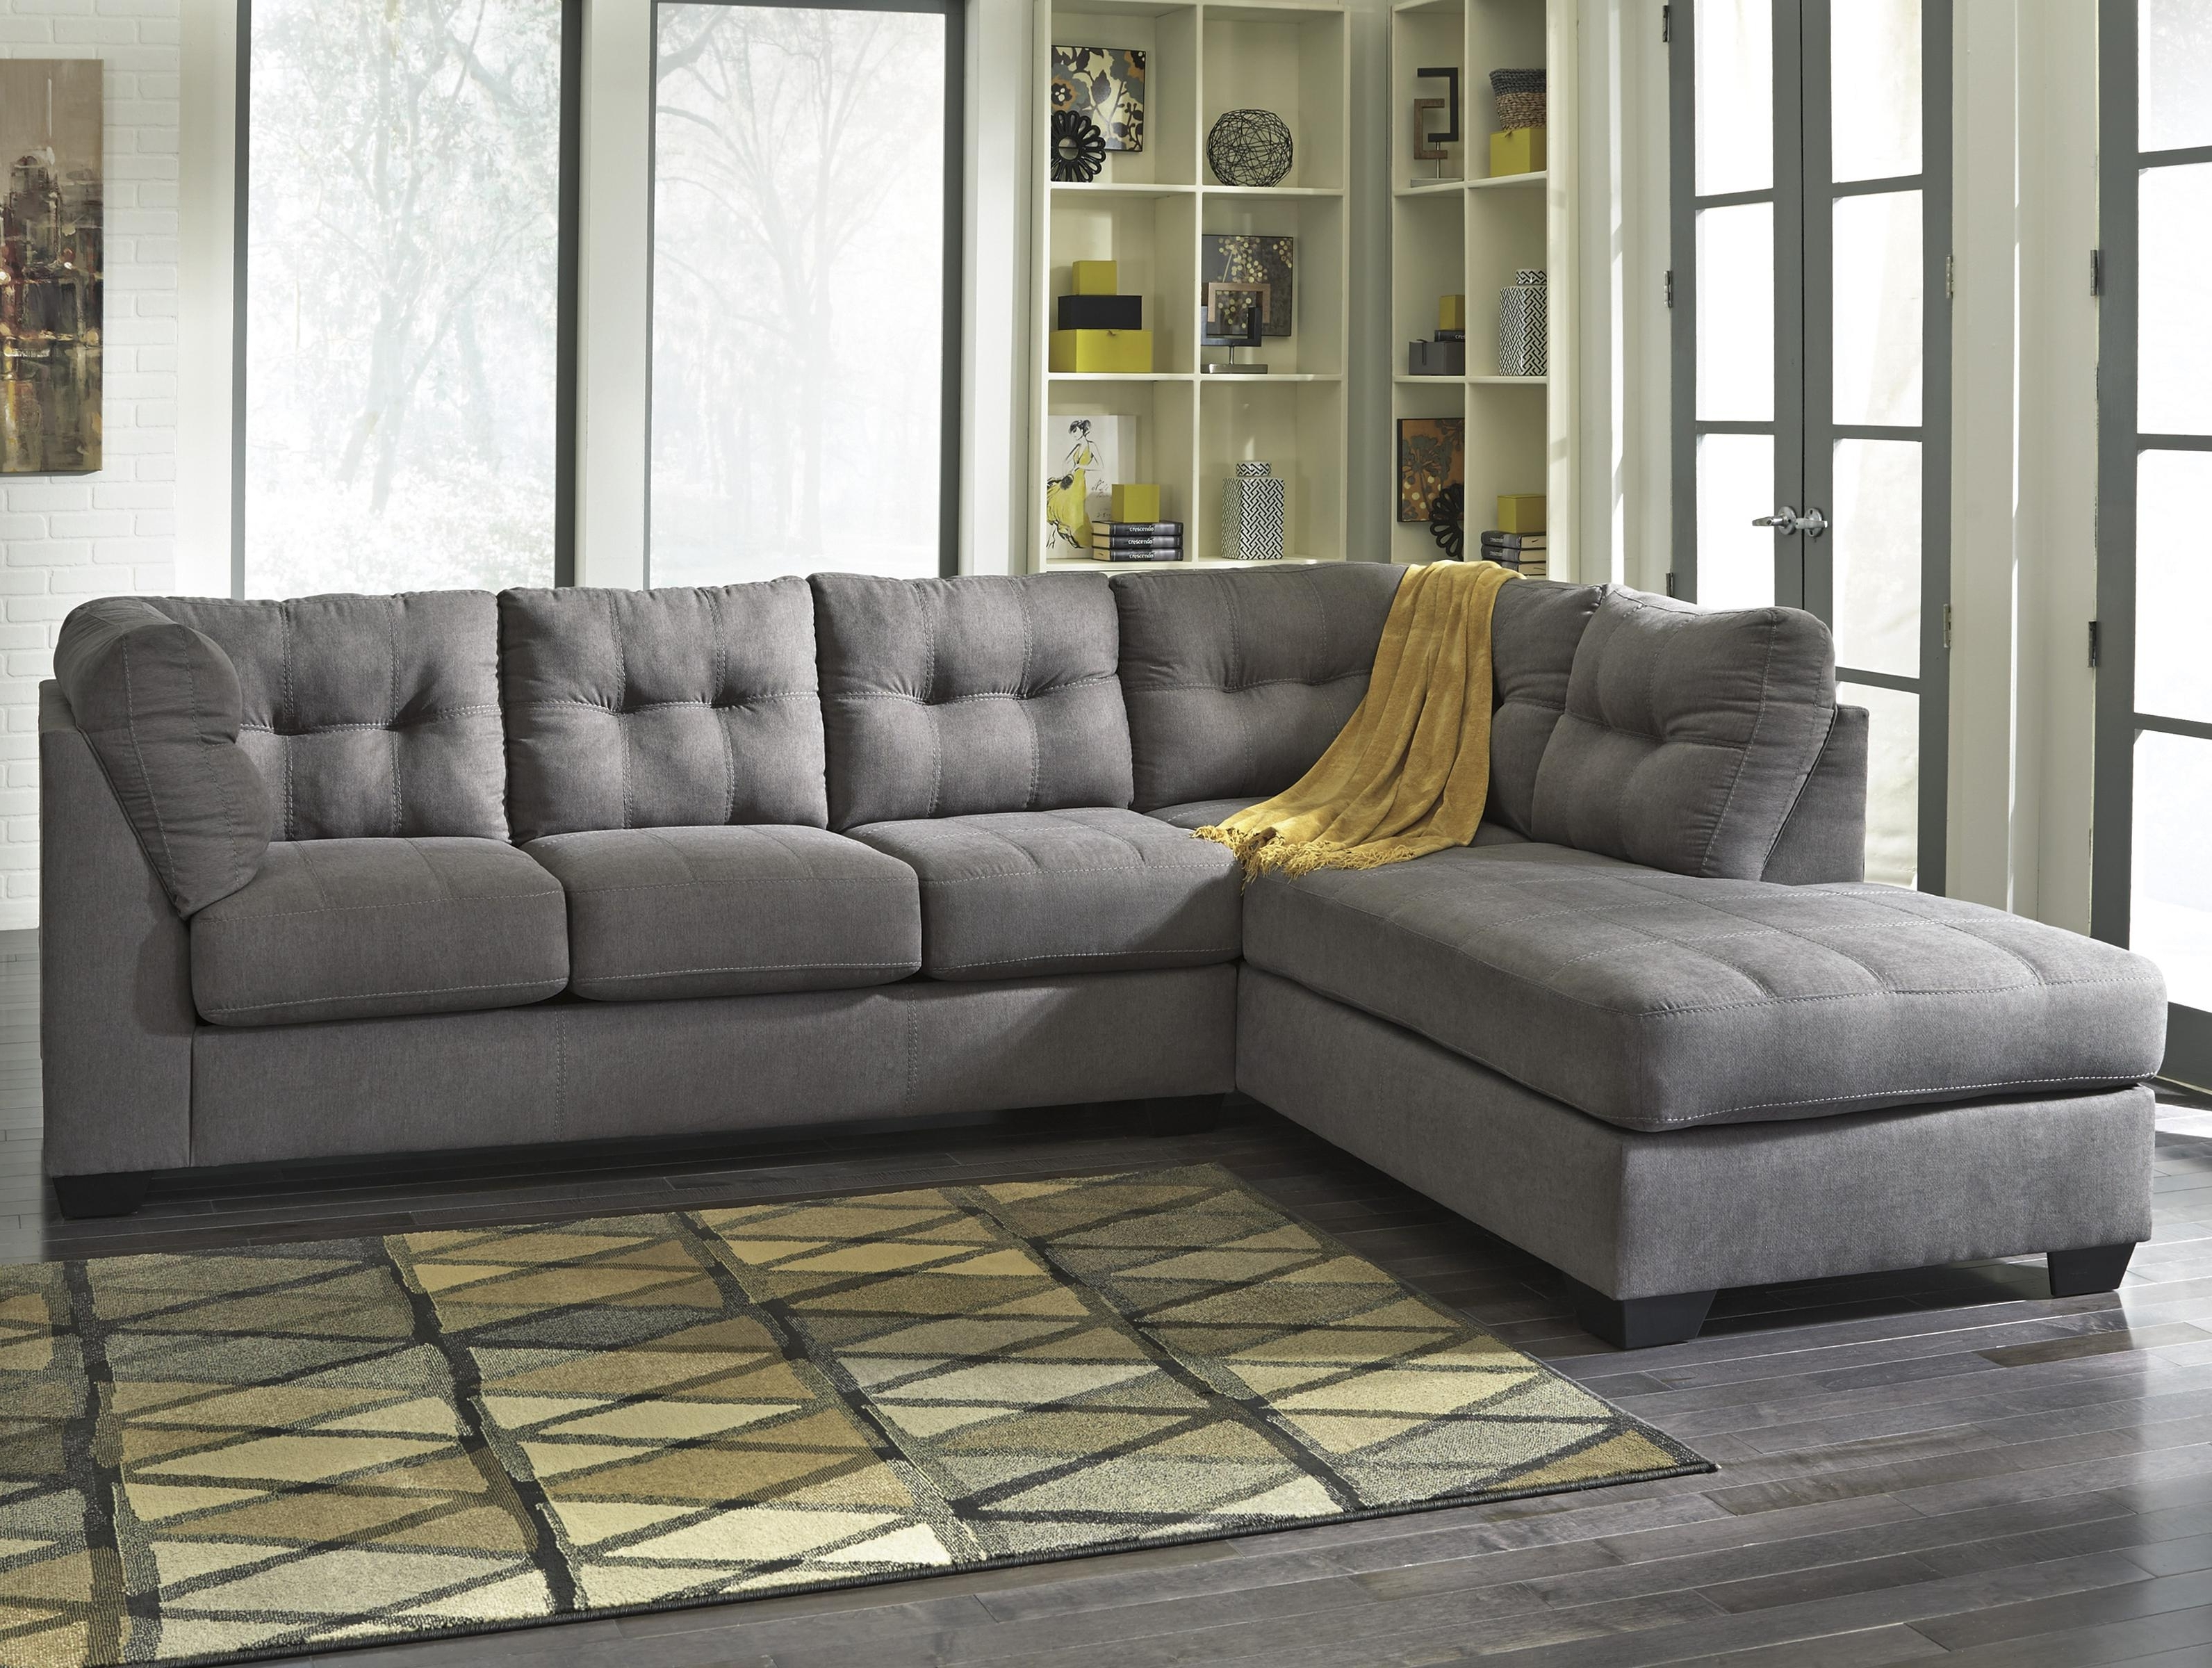 Most Recent Benchcraftashley Maier – Charcoal 2 Piece Sectional With Left Regarding 2 Piece Sectionals With Chaise (View 12 of 15)